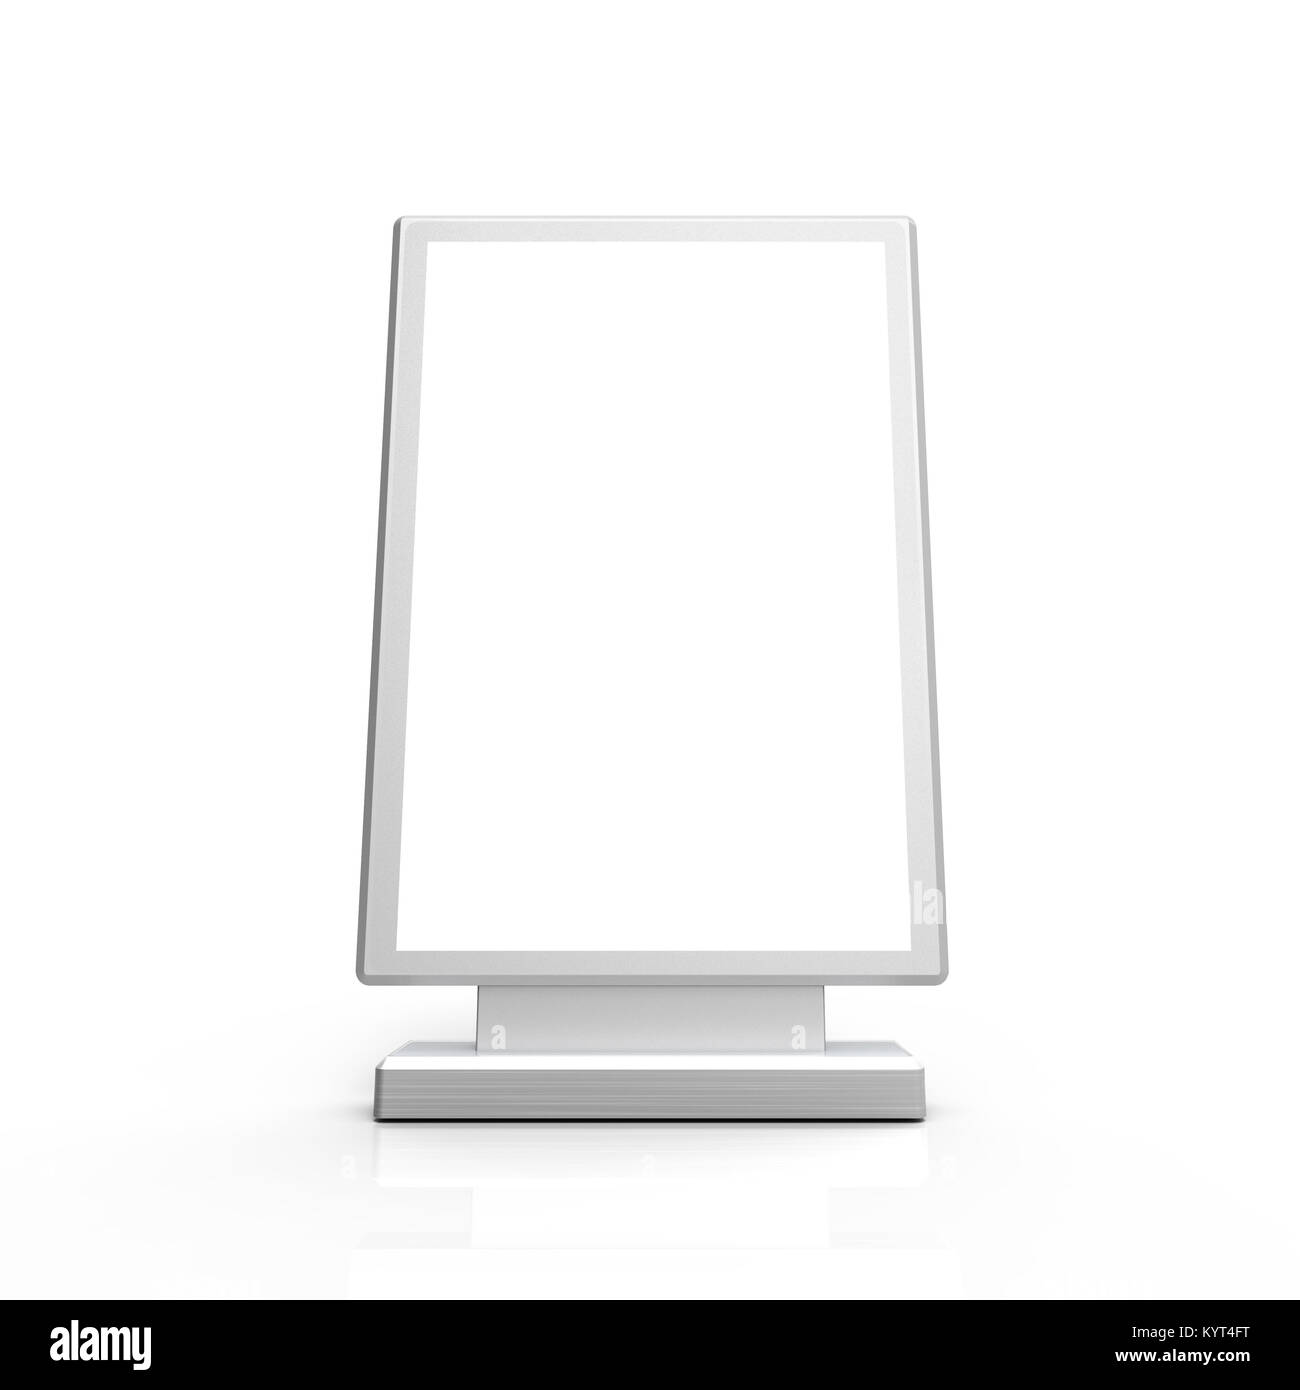 rectangle light box mockup 3d rendering sign board template for